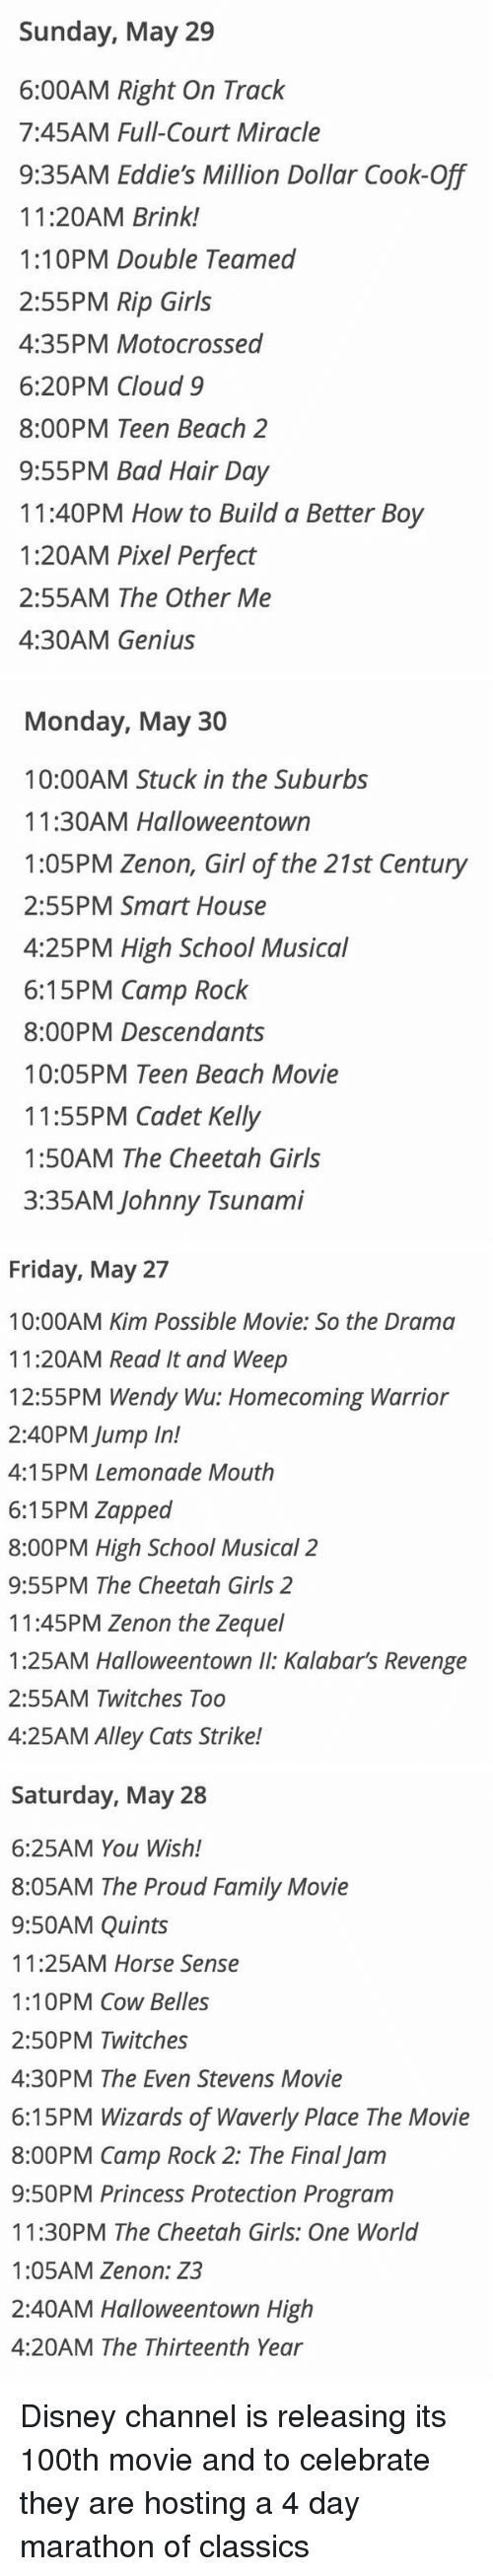 Bad, Cats, and Disney: Sunday, May 29  6:00AM Right On Track  7:45AM Full-Court Miracle  9:35AM Eddie's Million Dollar Cook-Off  11:20AM Brink!  1:10PM Double Teamed  2:55PM Rip Girls  4:35PM Motocrossed  6:20PM Cloud 9  8:00PM Teen Beach 2  9:55PM Bad Hair Day  11:40PM How to Build a Better Boy  1:20AM Pixel Perfect  2:55AM The Other Me  4:30AM Genius   Monday, May 30  10:00AM Stuck in the Suburbs  11:30AM Halloweentown  1:05PM Zenon, Girl of the 21st Century  2:55PM Smart House  4:25PM High School Musical  6:15 PM Camp Rock  8:00PM Descendants  10:05PM Teen Beach Movie  11:55PM Cadet Kelly  1:50AM The Cheetah Girls  3:35AM Johnny Tsunami   Friday, May 27  10:00AM Kim Possible Movie: So the Drama  11:20AM Read It and Weep  12:55PM Wendy Wu: Homecoming Warrior  2:40PM Jump In!  4:15PM Lemonade Mouth  6:15PM Zapped  8:00PM High School Musical 2  9:55PM The Cheetah Girls 2  11:45PM Zenon the Zequel  1:25AM Halloweentown Kalabar's Revenge  2:55AM Twitches Too  4:25AM Alley Cats Strike!   Saturday, May 28  6:25AM You Wish!  8:05AM The Proud Family Movie  9:50AM Quints  11:25AM Horse Sense  1:10PM Cow Belles  2:50PM Twitches  4:30PM The Even Stevens Movie  6:15PM Wizards of Waverly Place The Movie  8:00PM Camp Rock 2: The Final Jam  9:50PM Princess Protection Program  11:30PM The Cheetah Girls: One World  1:05AM Zenon: Z3  2:40AM Halloweentown High  4:20AM The Thirteenth Year Disney channel is releasing its 100th movie and to celebrate they are hosting a 4 day marathon of classics